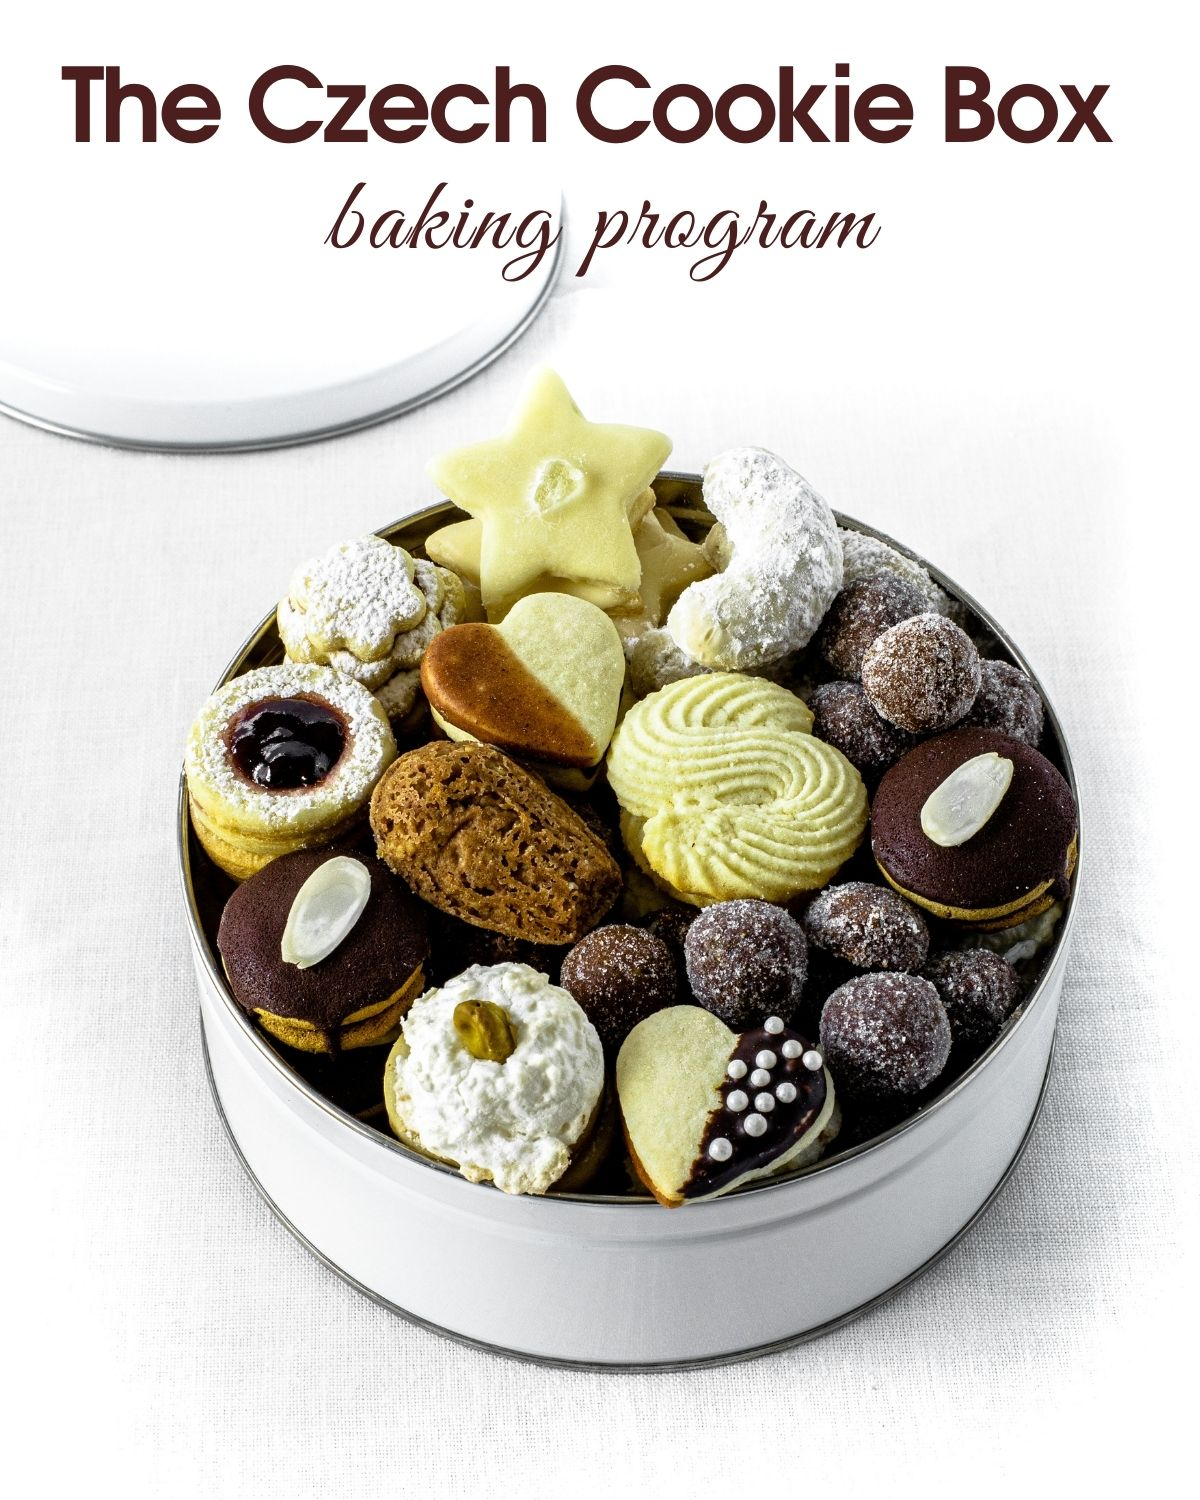 Cover Page for The Czech Cookie Box course